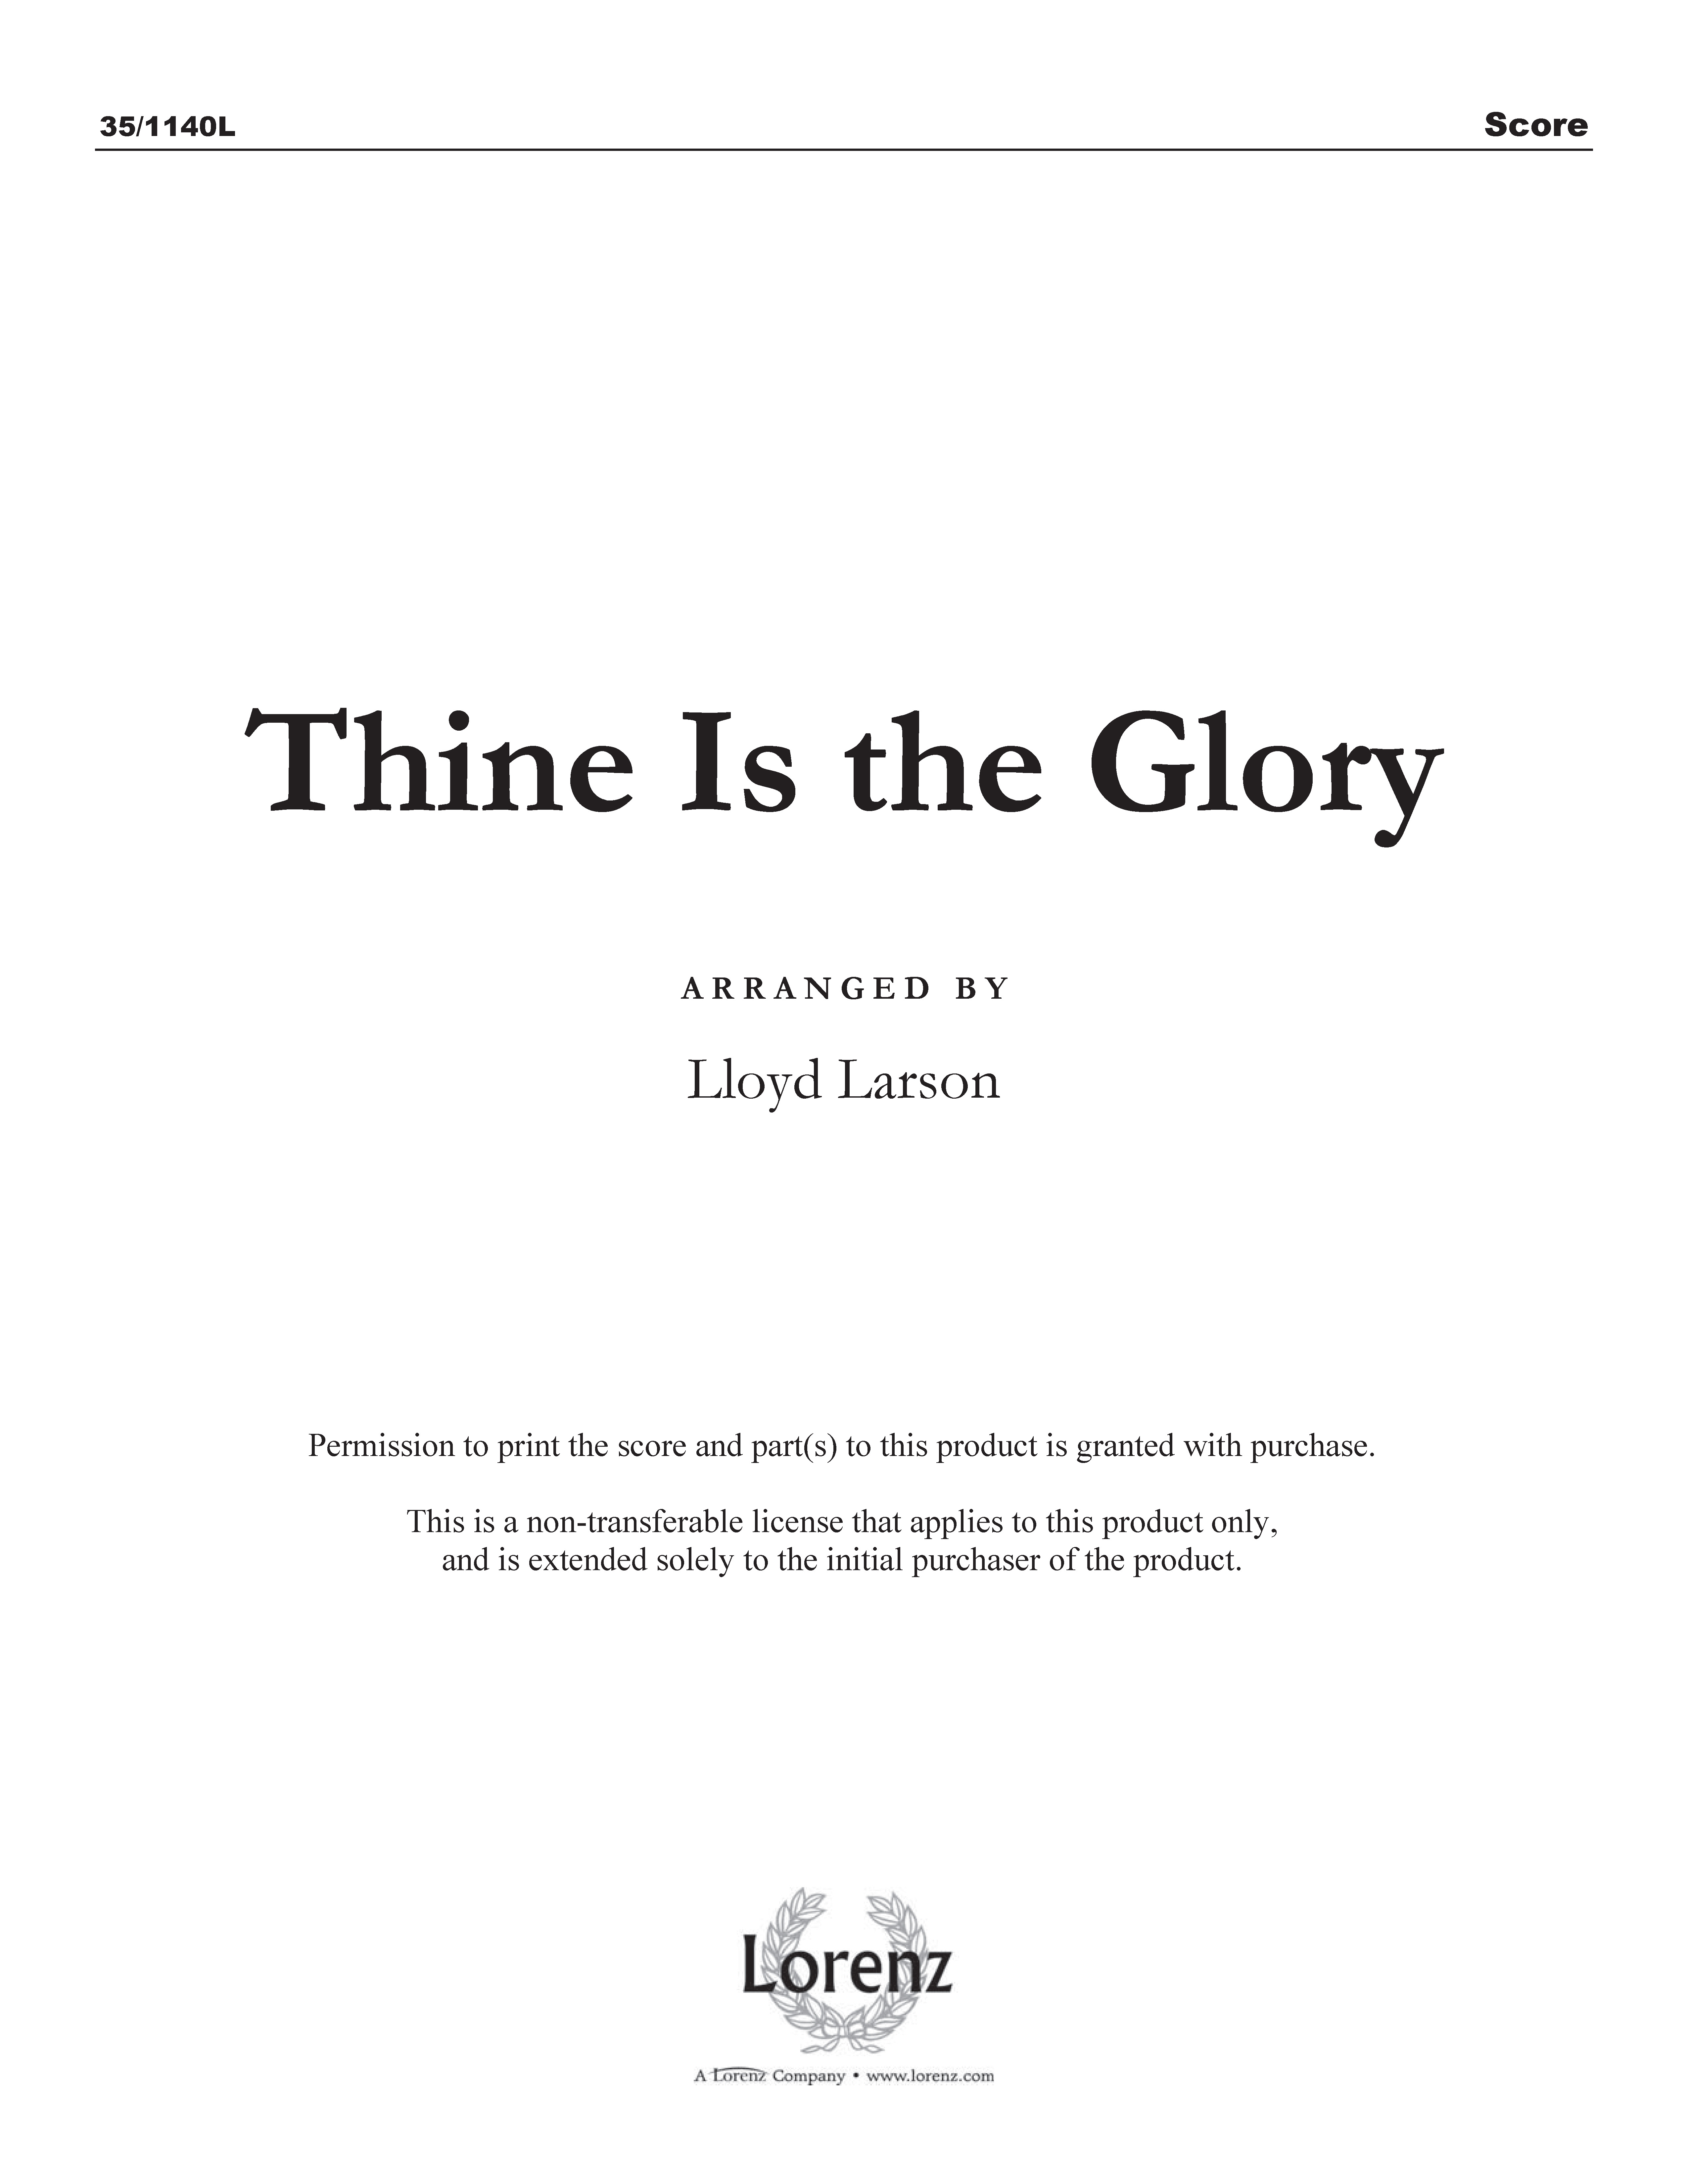 Thine Is the Glory (Digital Delivery)